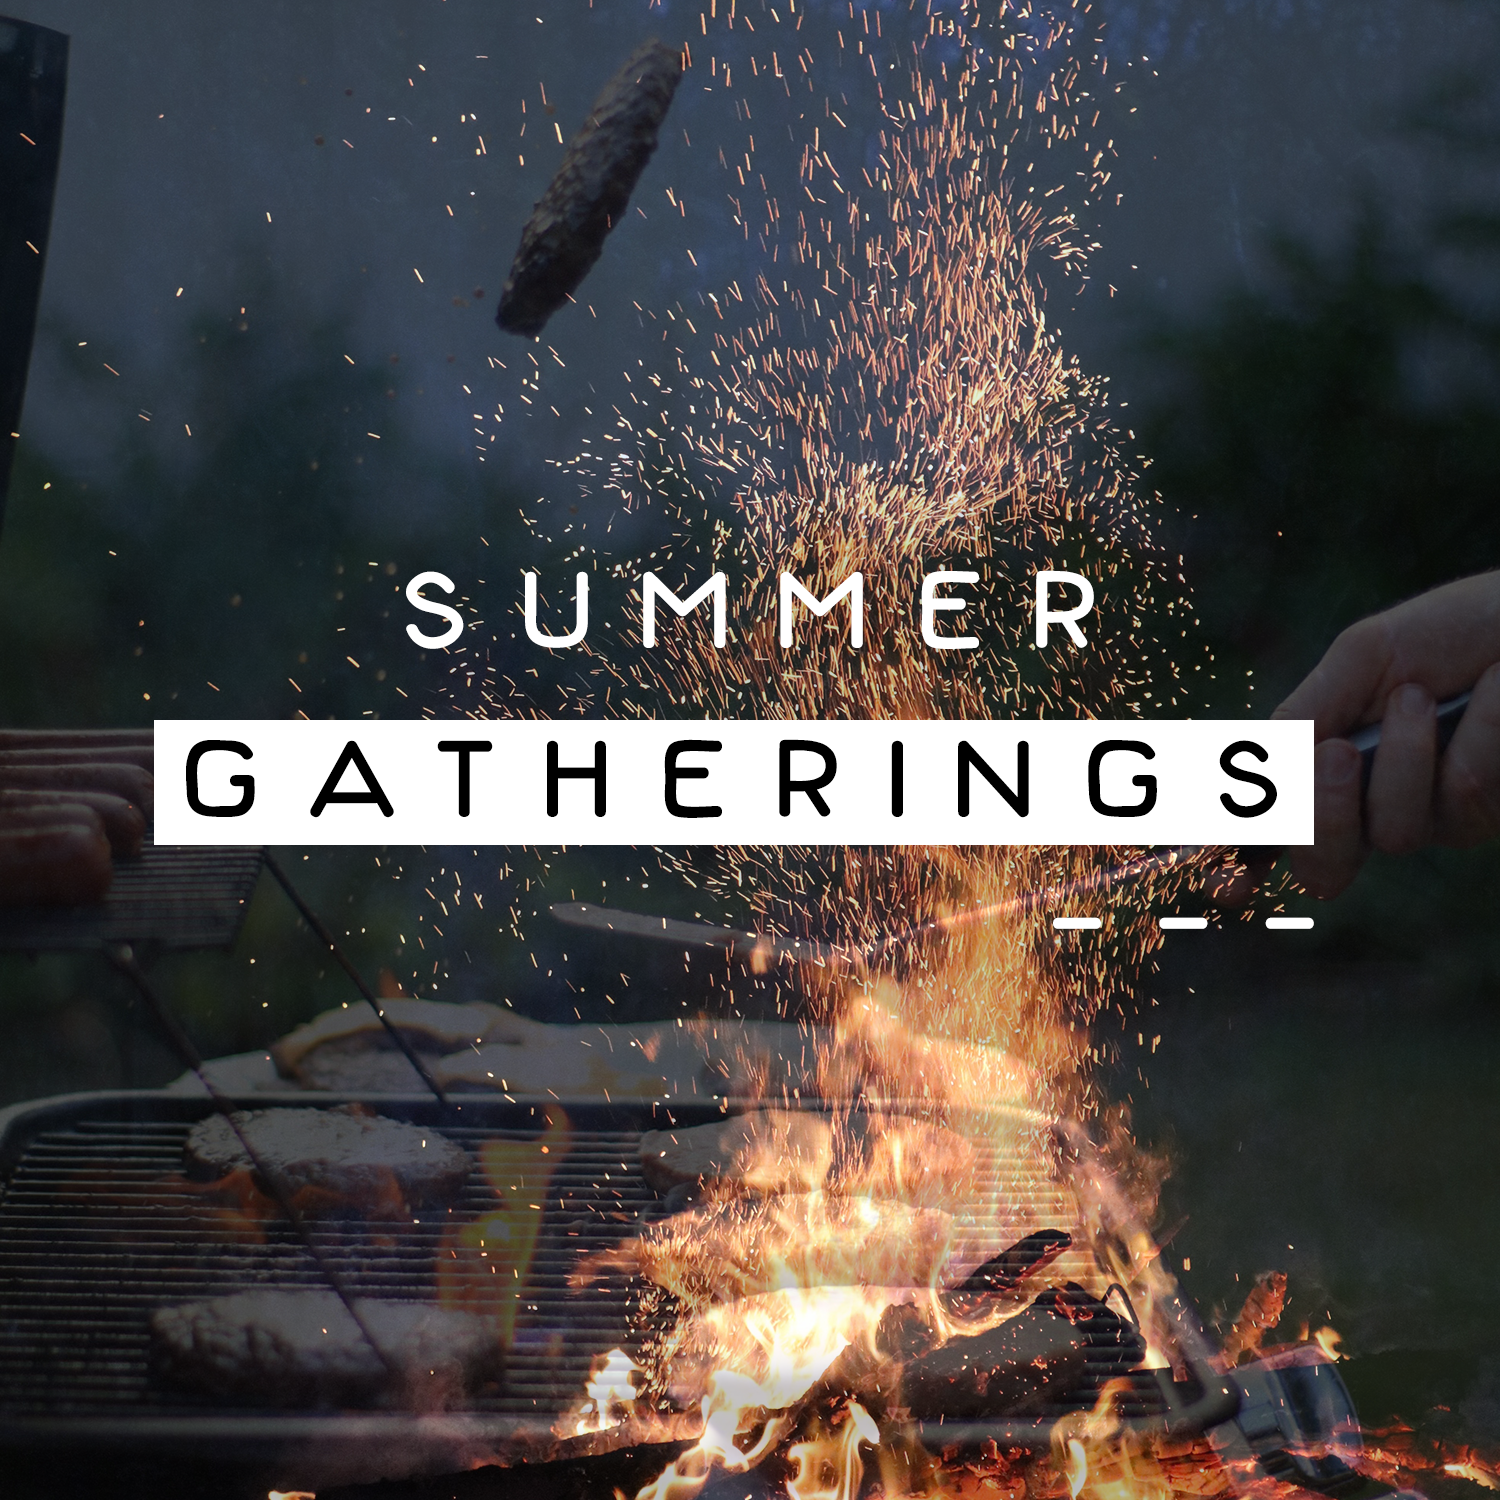 Beach Hang - July 7 @ 6pmDurand BeachCookout, bonfire and worshipLed by Noah and Paige